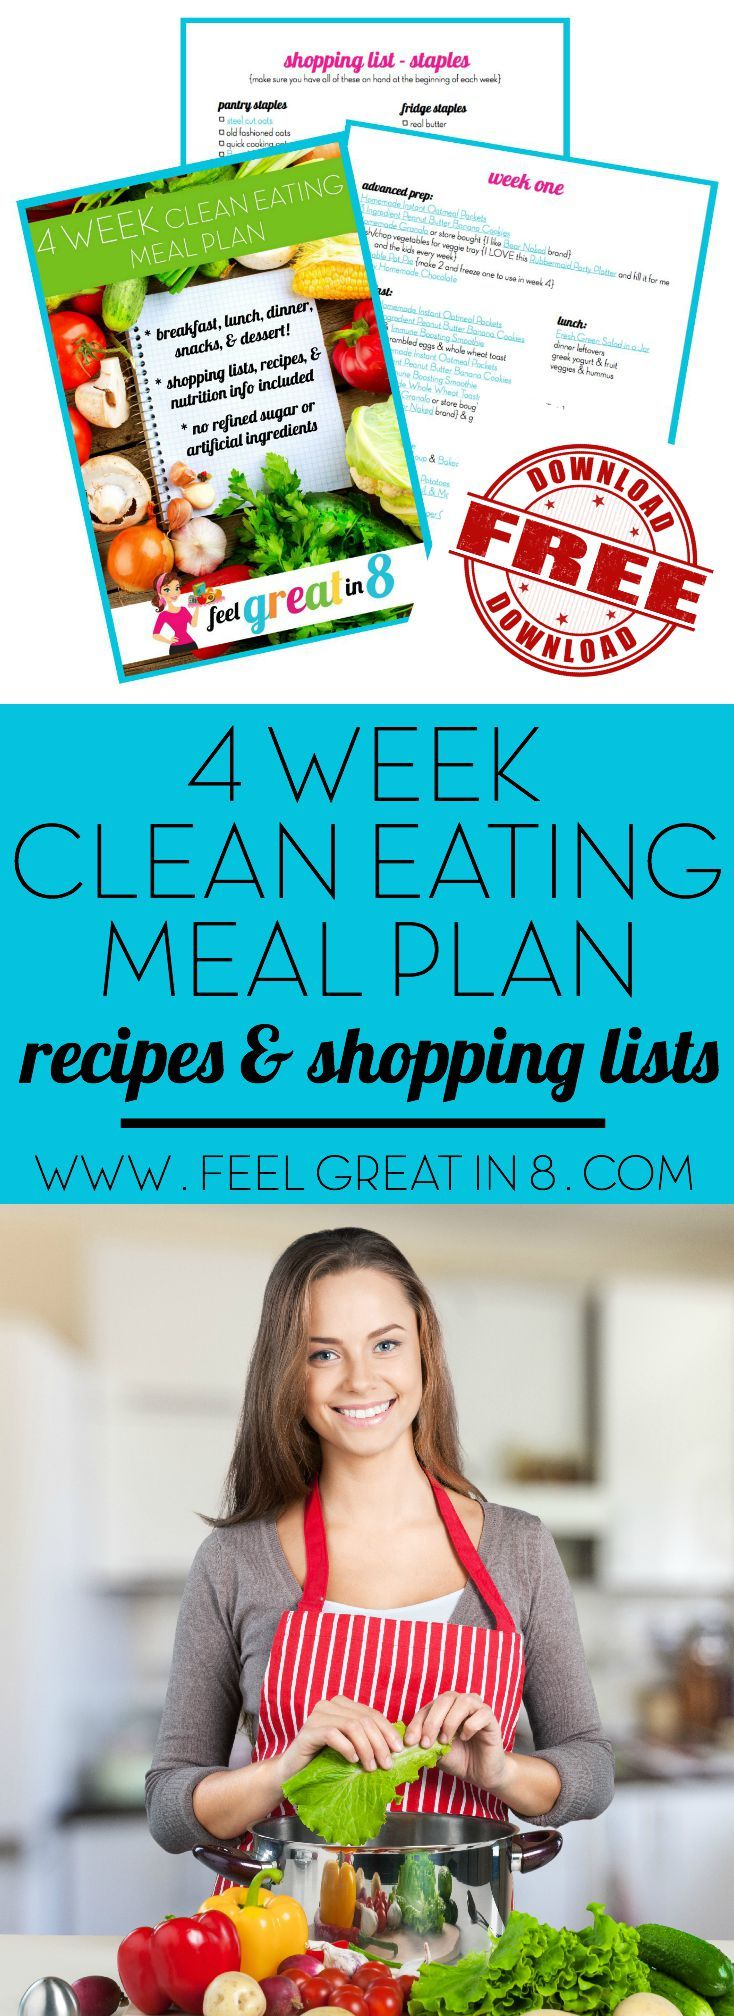 Free 4 Week Clean Eating Meal Plan! Includes recipes, nutrition info &  calorie counts